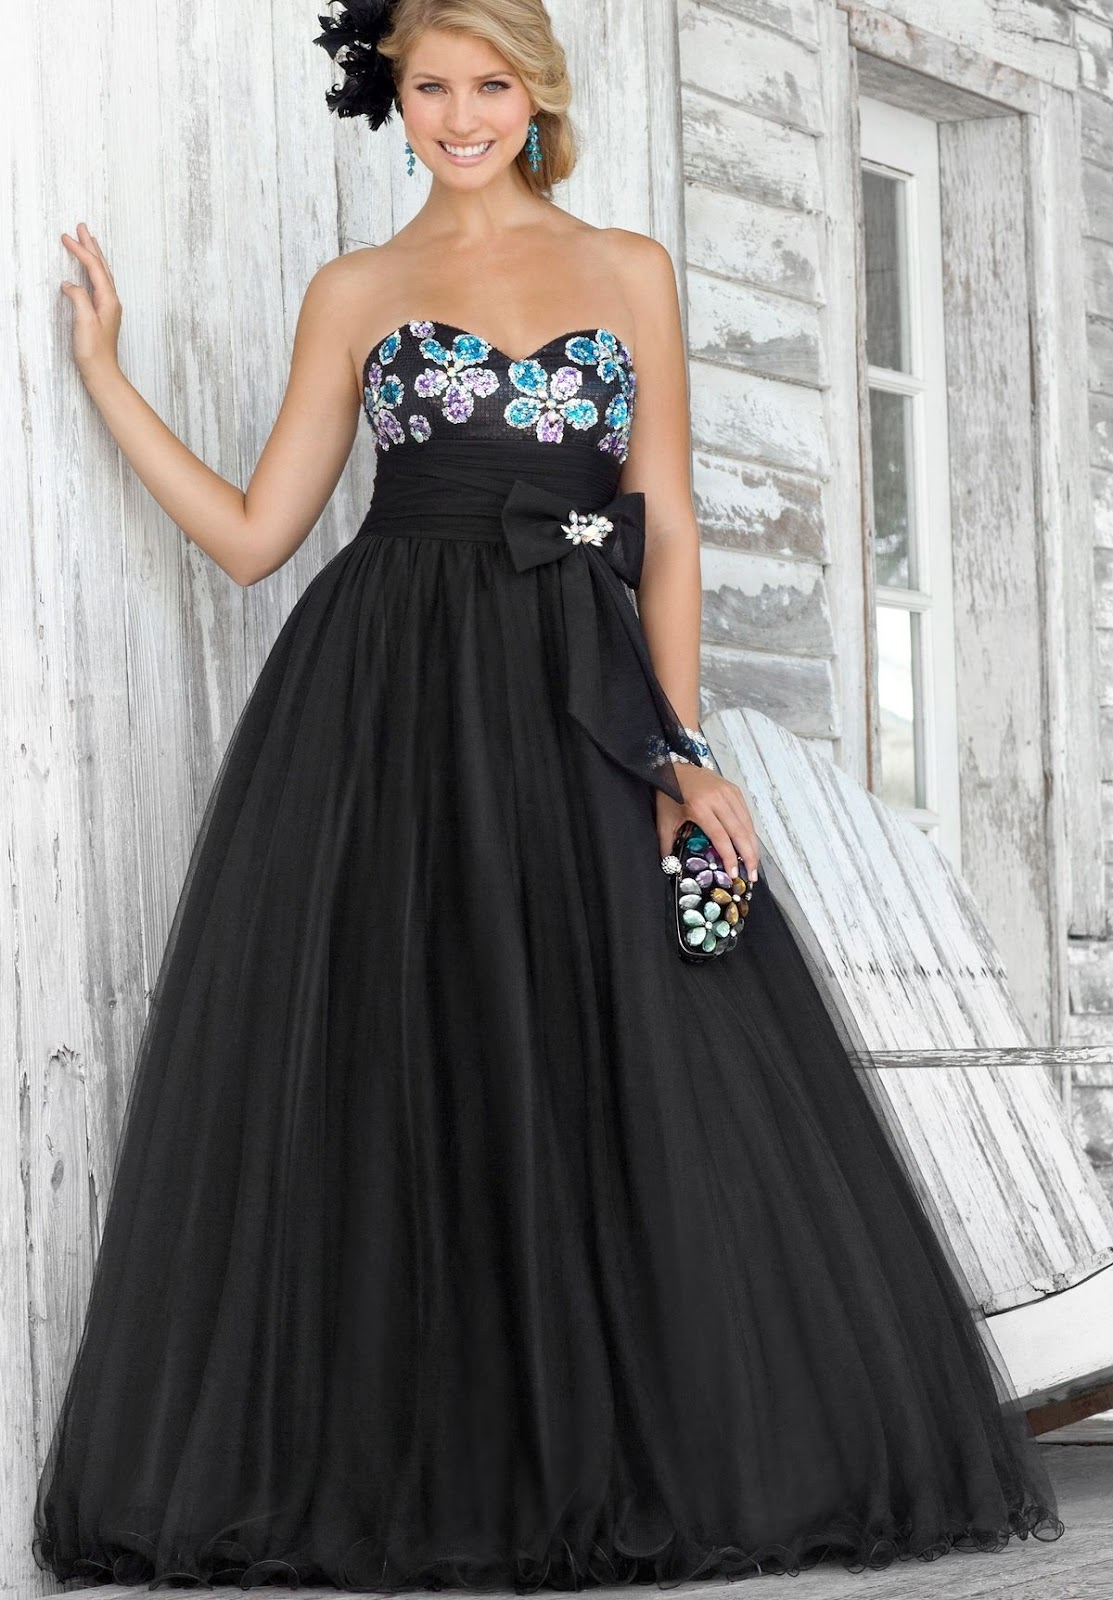 WhiteAzalea Ball Gowns: Black Ball Gown Prom Dresses